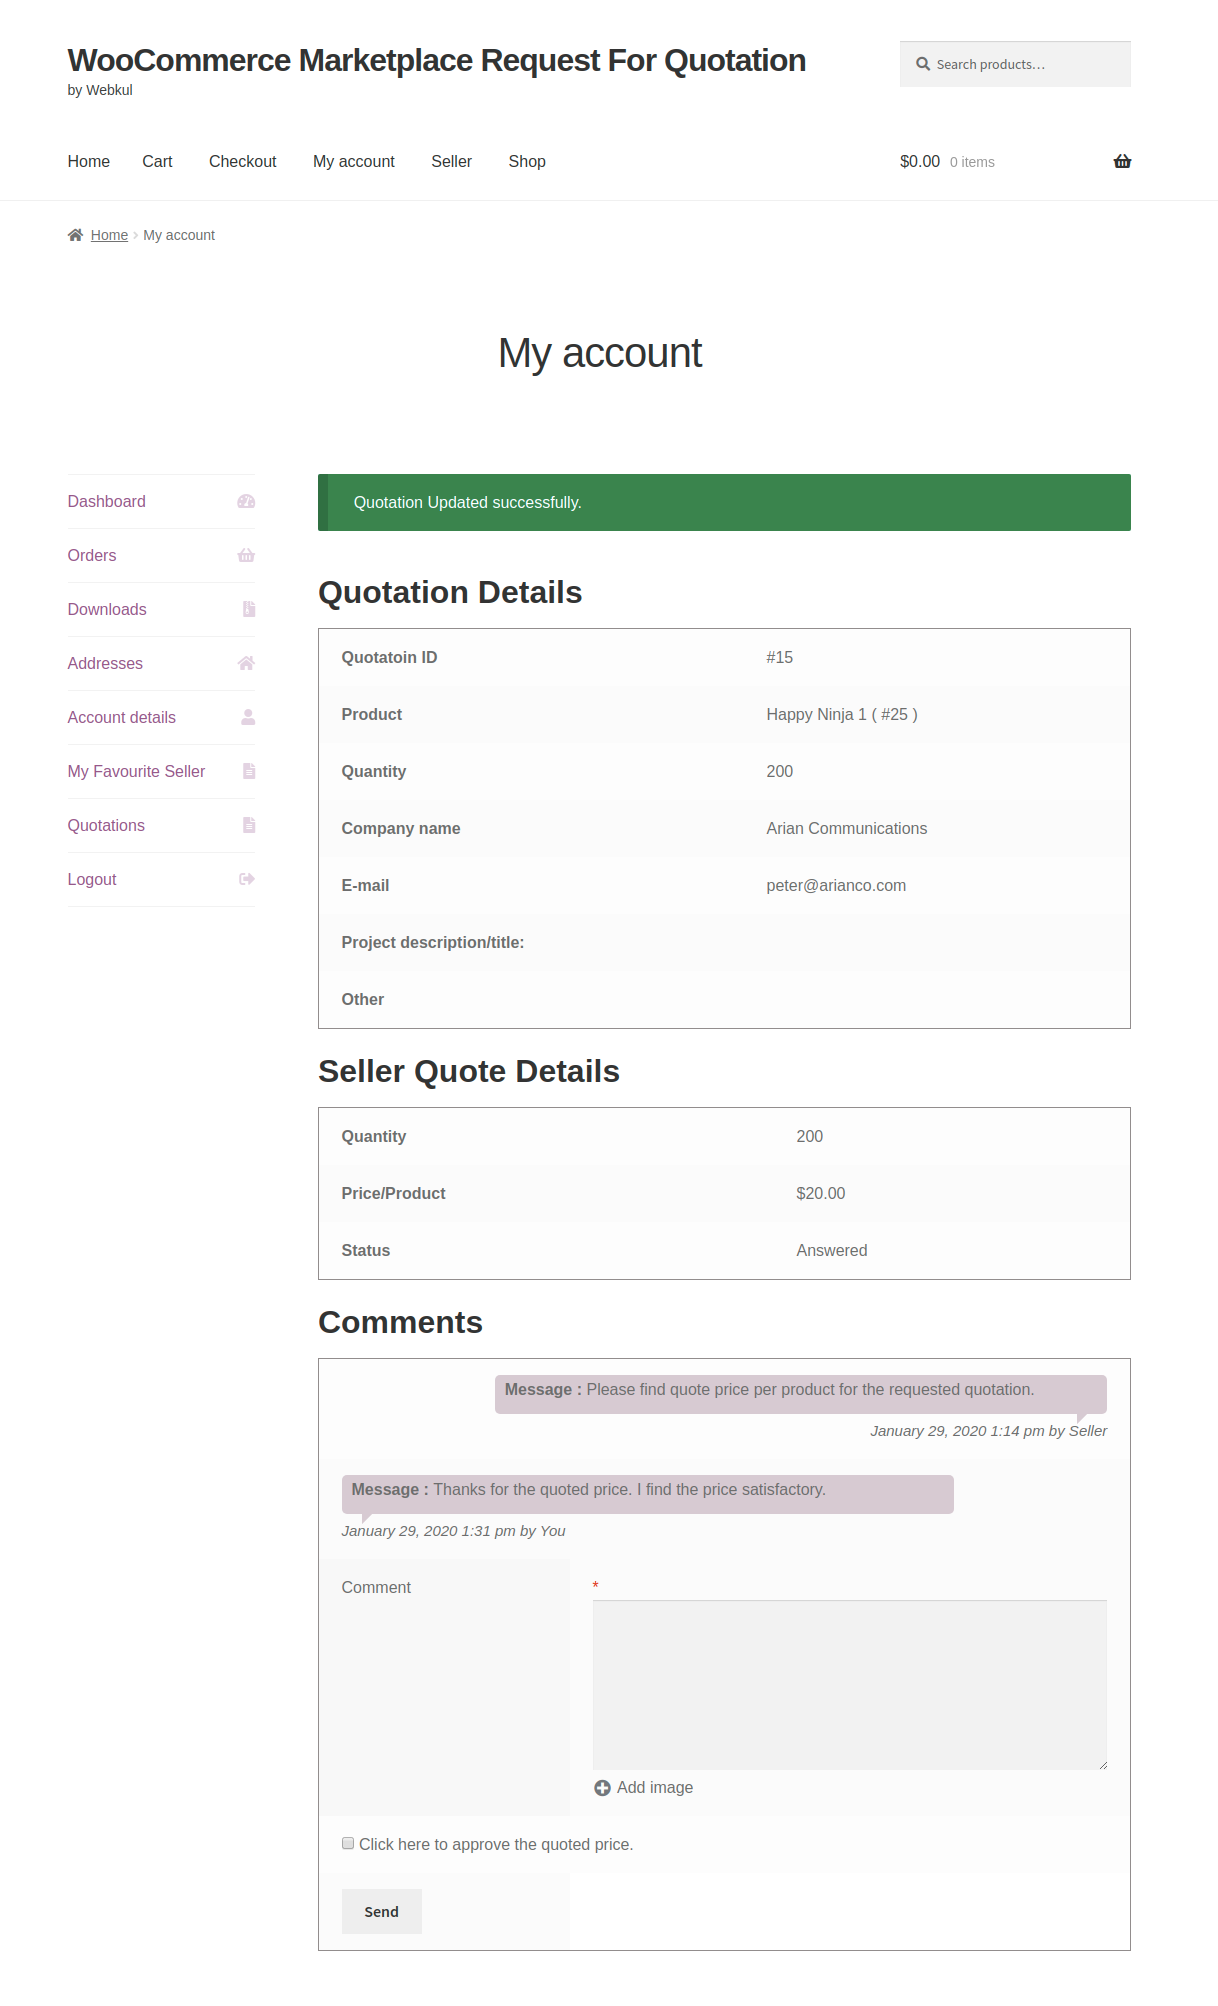 webkul-woocommerce-marketplace-request-for-quotation-customer-end-reply-added